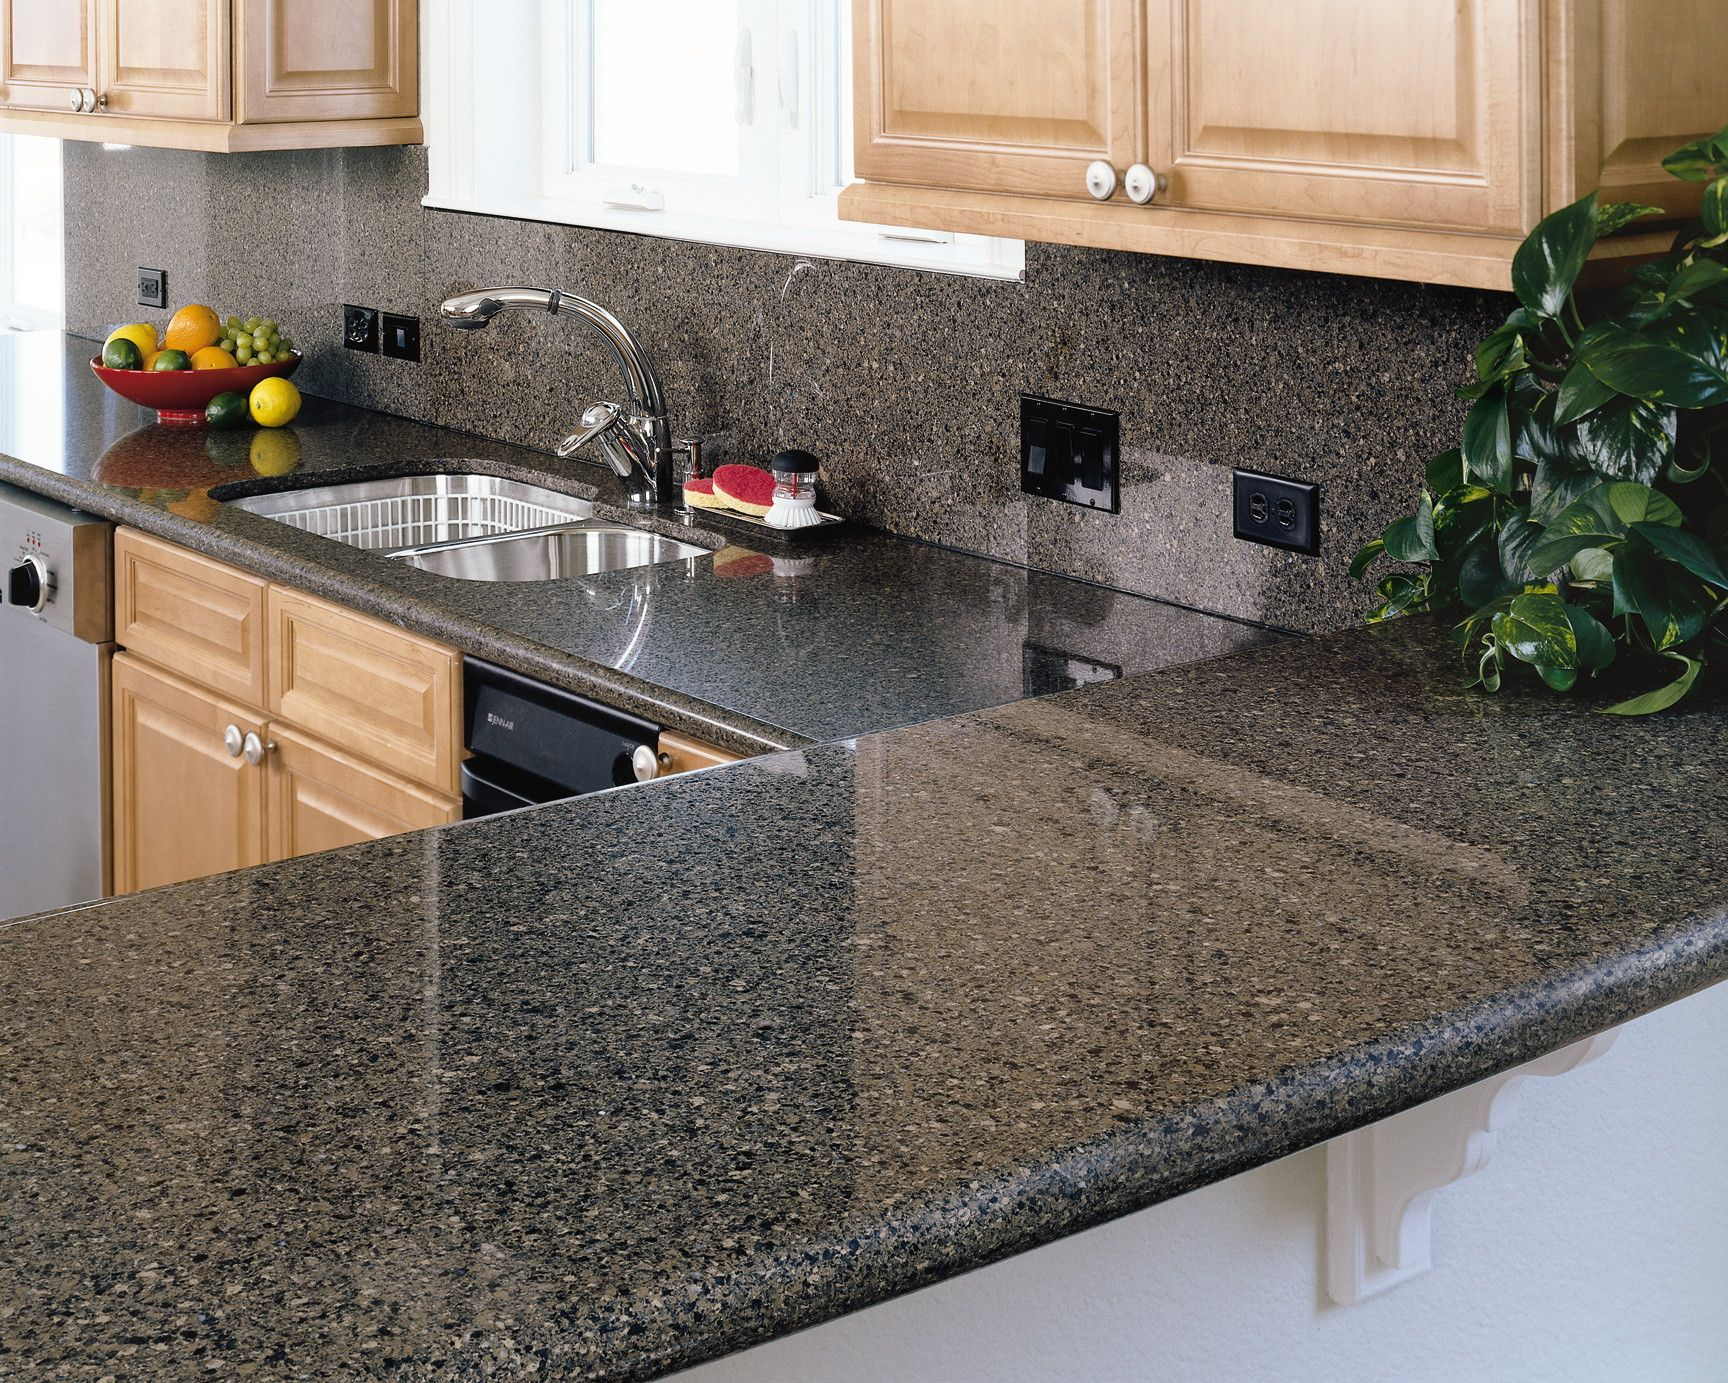 Recycled glass countertops pros and cons - Awesome Recycled Glass Countertops For Amazing Countertop Ideas Chic Kitchen Island With Dark Recycled Glass